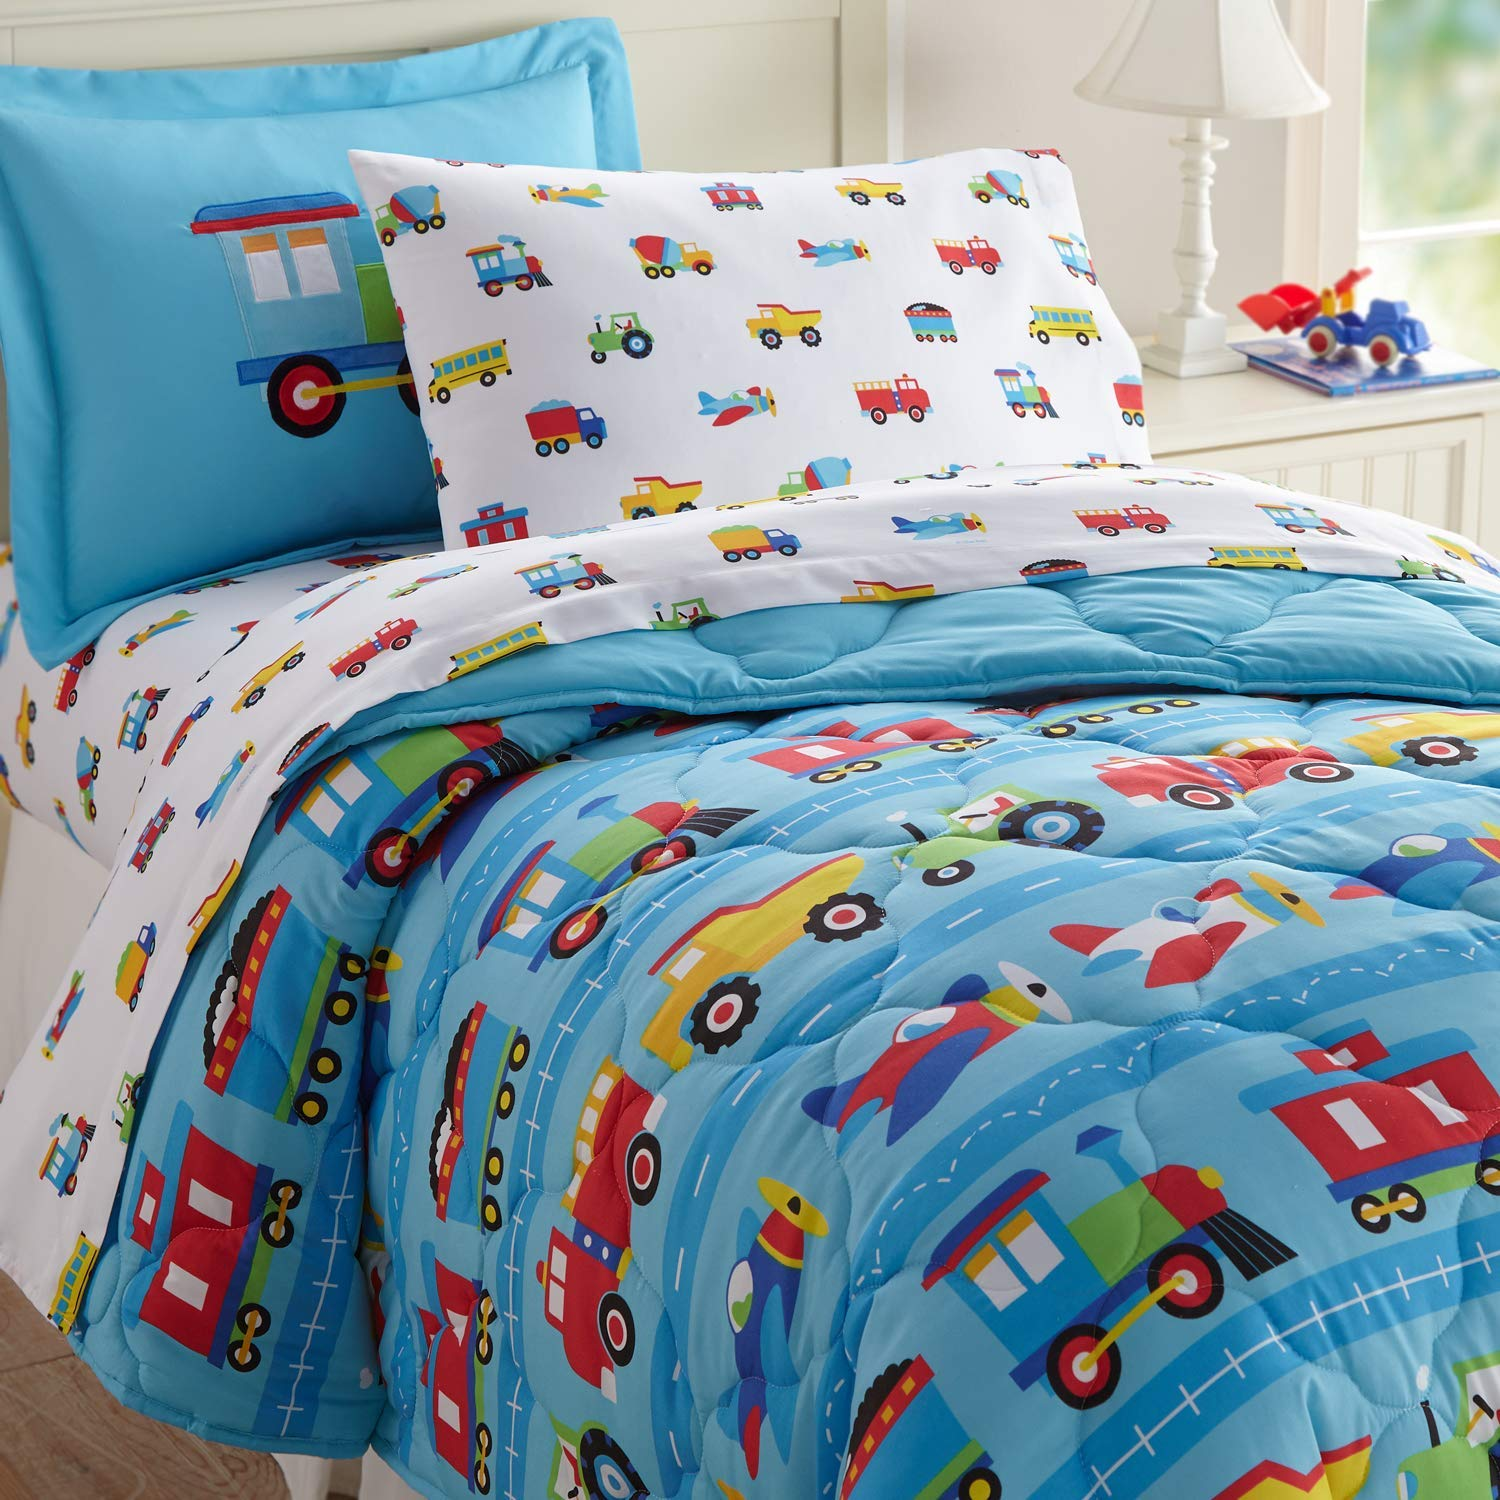 Wildkin 5 Piece Twin Bed-in-A-Bag, 100% Microfiber Bedding Set, Includes Comforter, Flat Sheet, Fitted Sheet, Pillowcase, and Embroidered Sham, Olive Kids Design - Trains, Planes, and Trucks